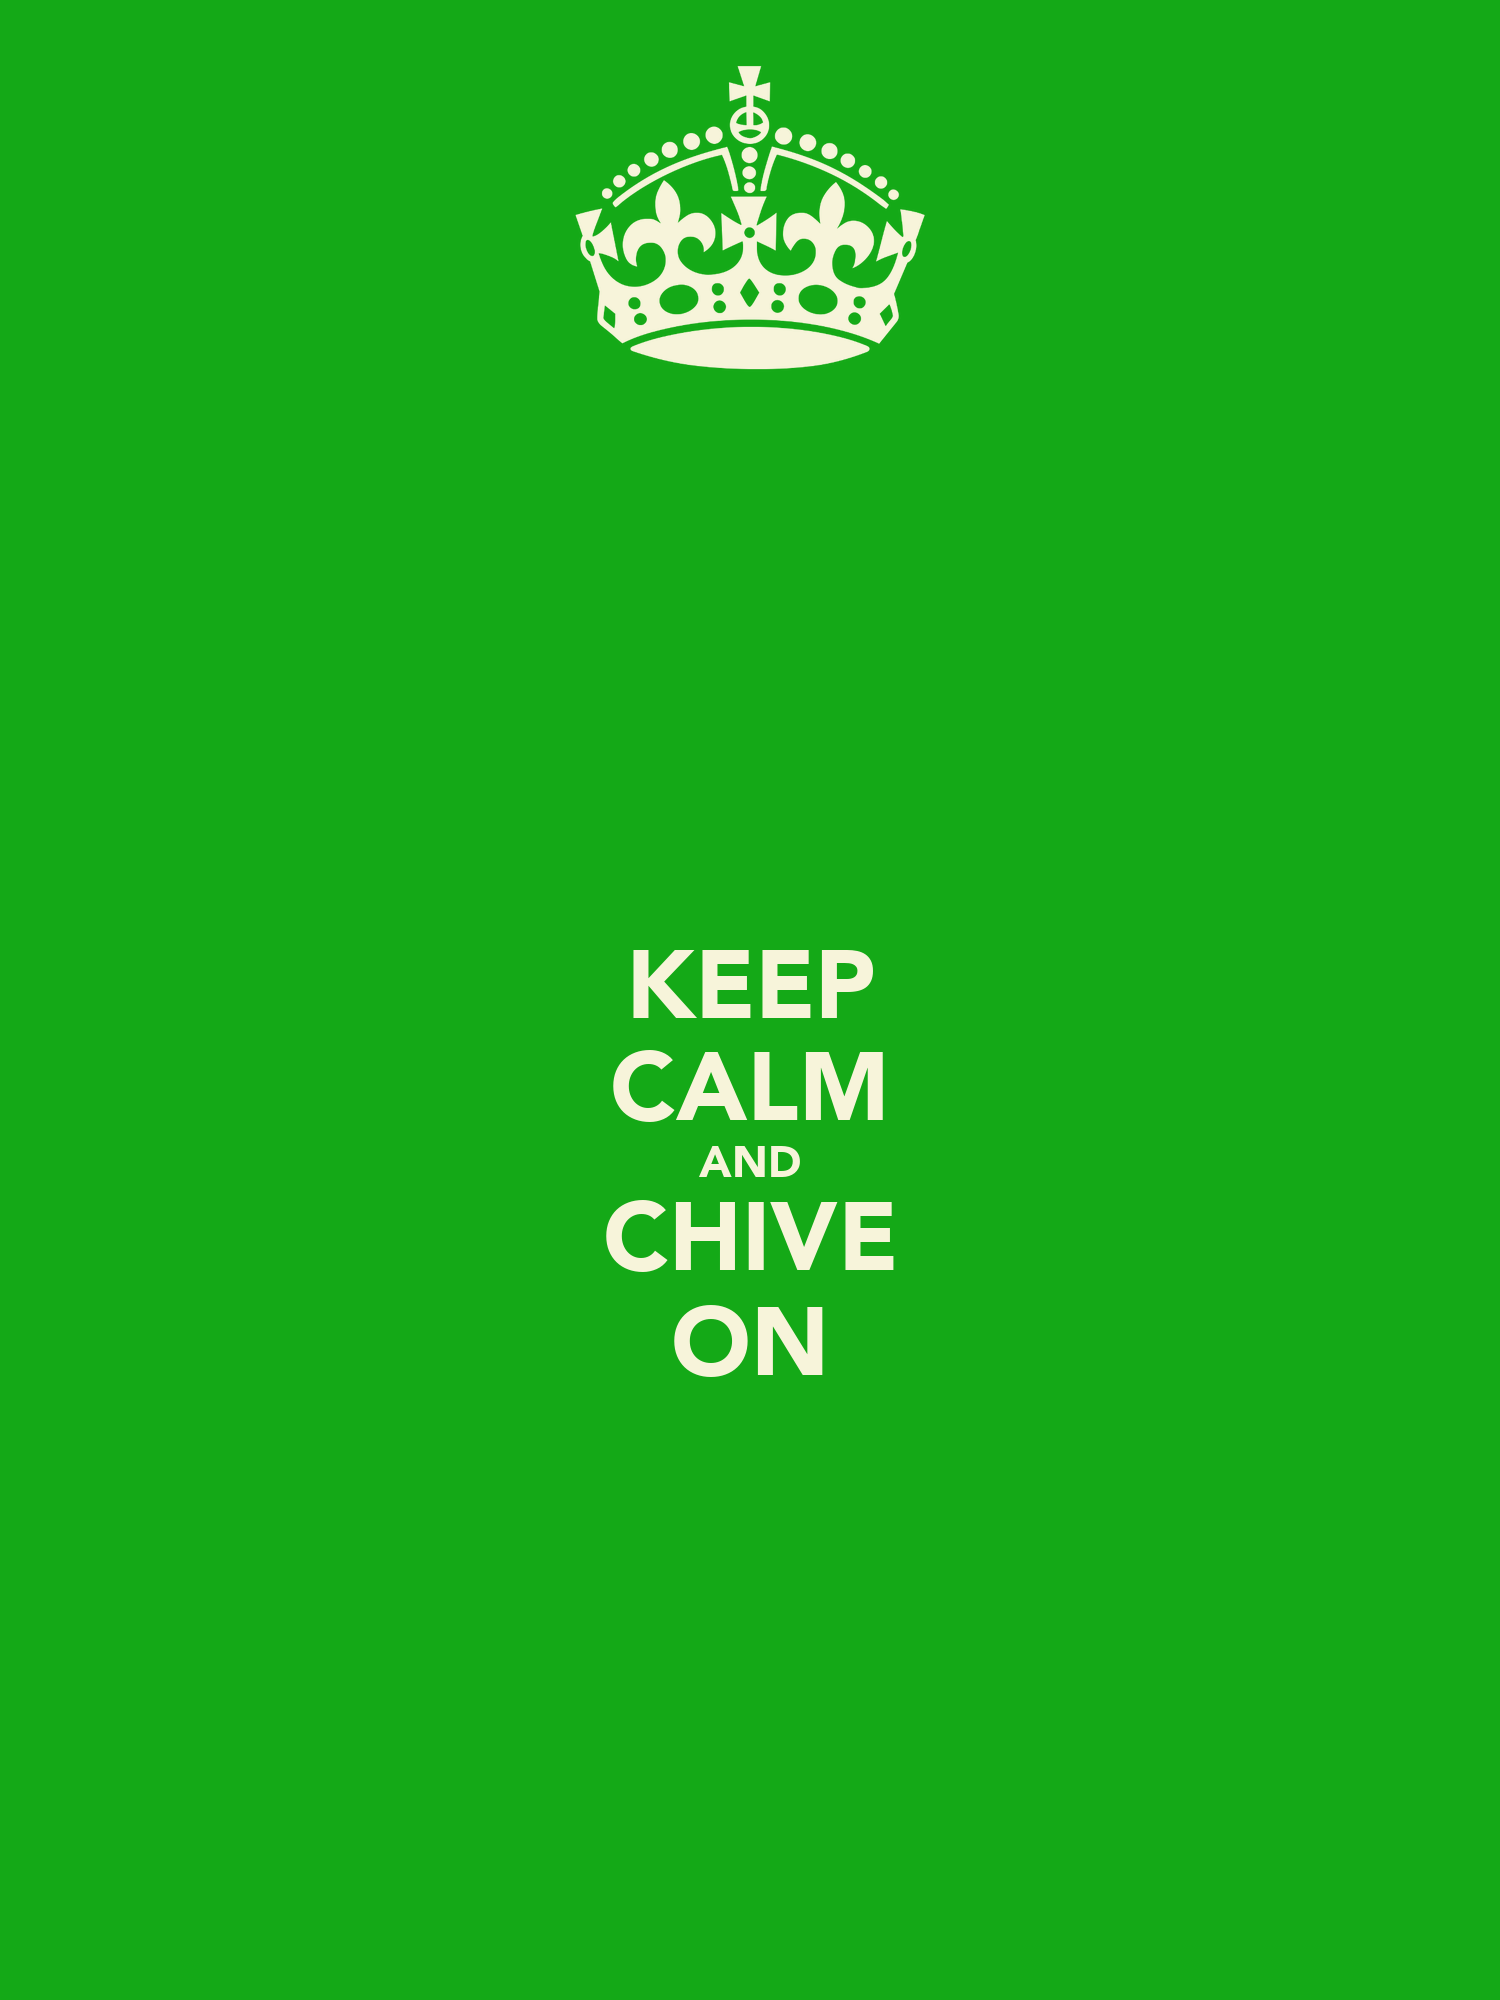 KEEP CALM AND CHIVE ON Poster | Beau Vickery | Keep Calm-o ...